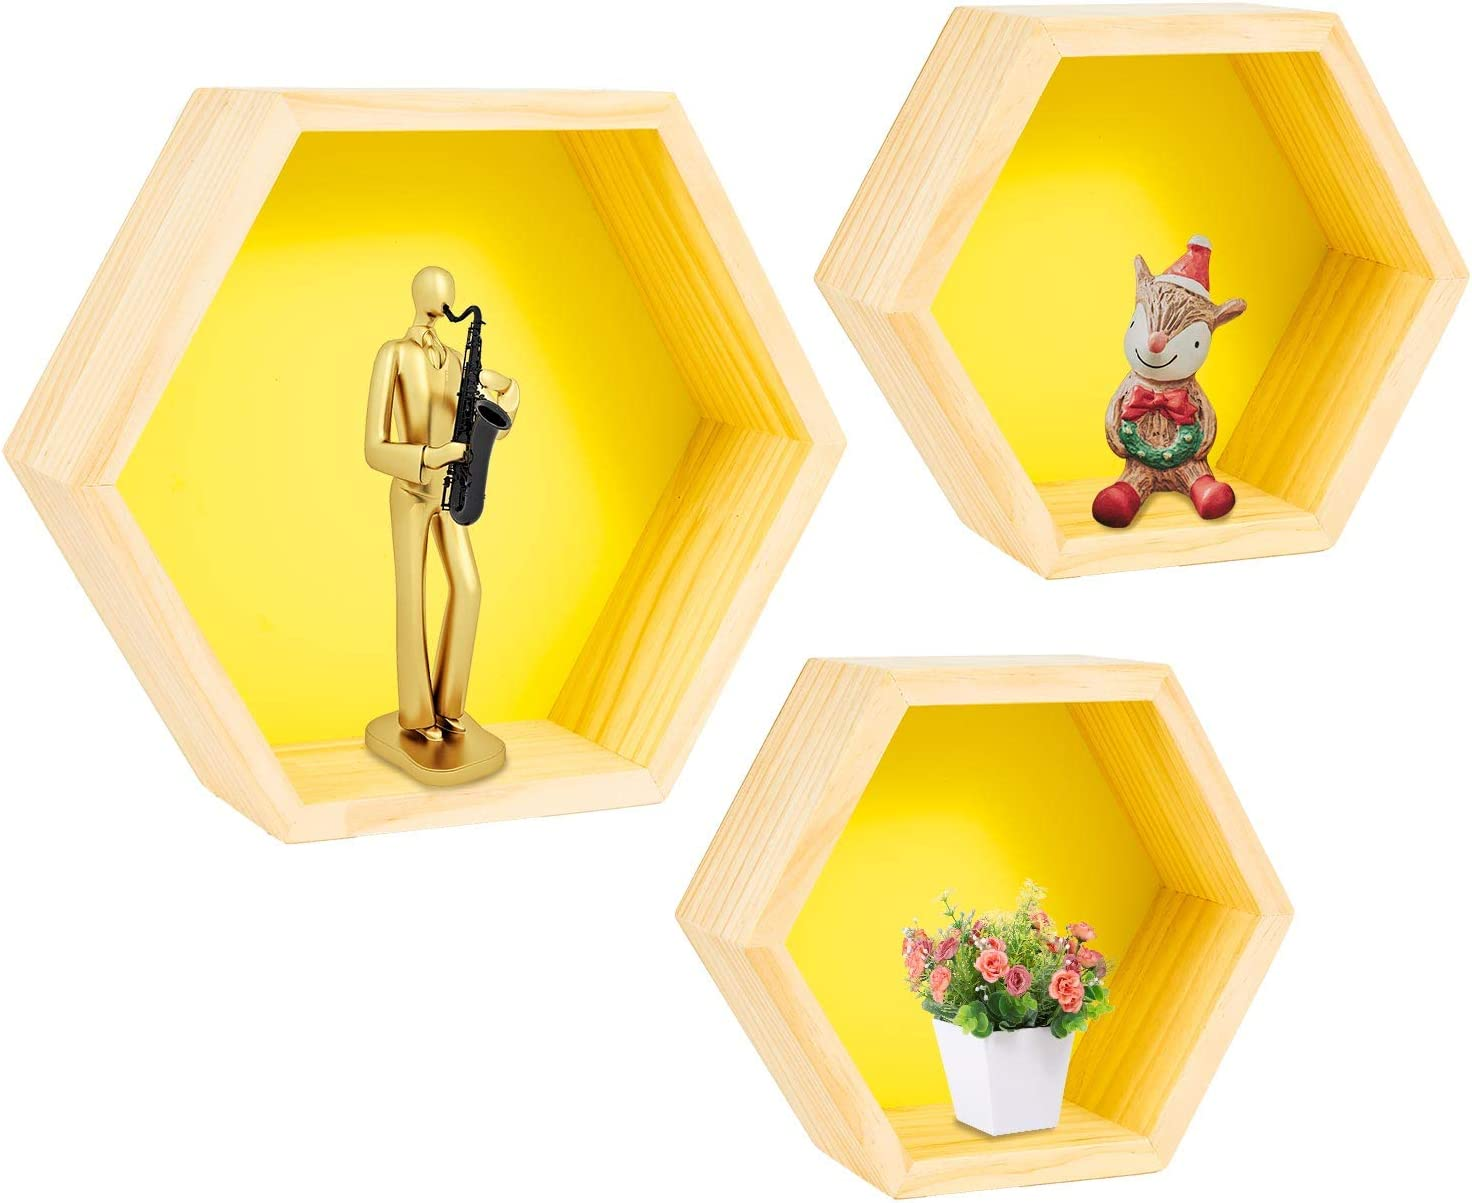 Floating Shelves Wall Mounted Set of 3, Geometric Hexagon Shaped Storage Shelves Home Decor for Bedroom, Hallway, Office, Living Room, Kitchen (Yellow)